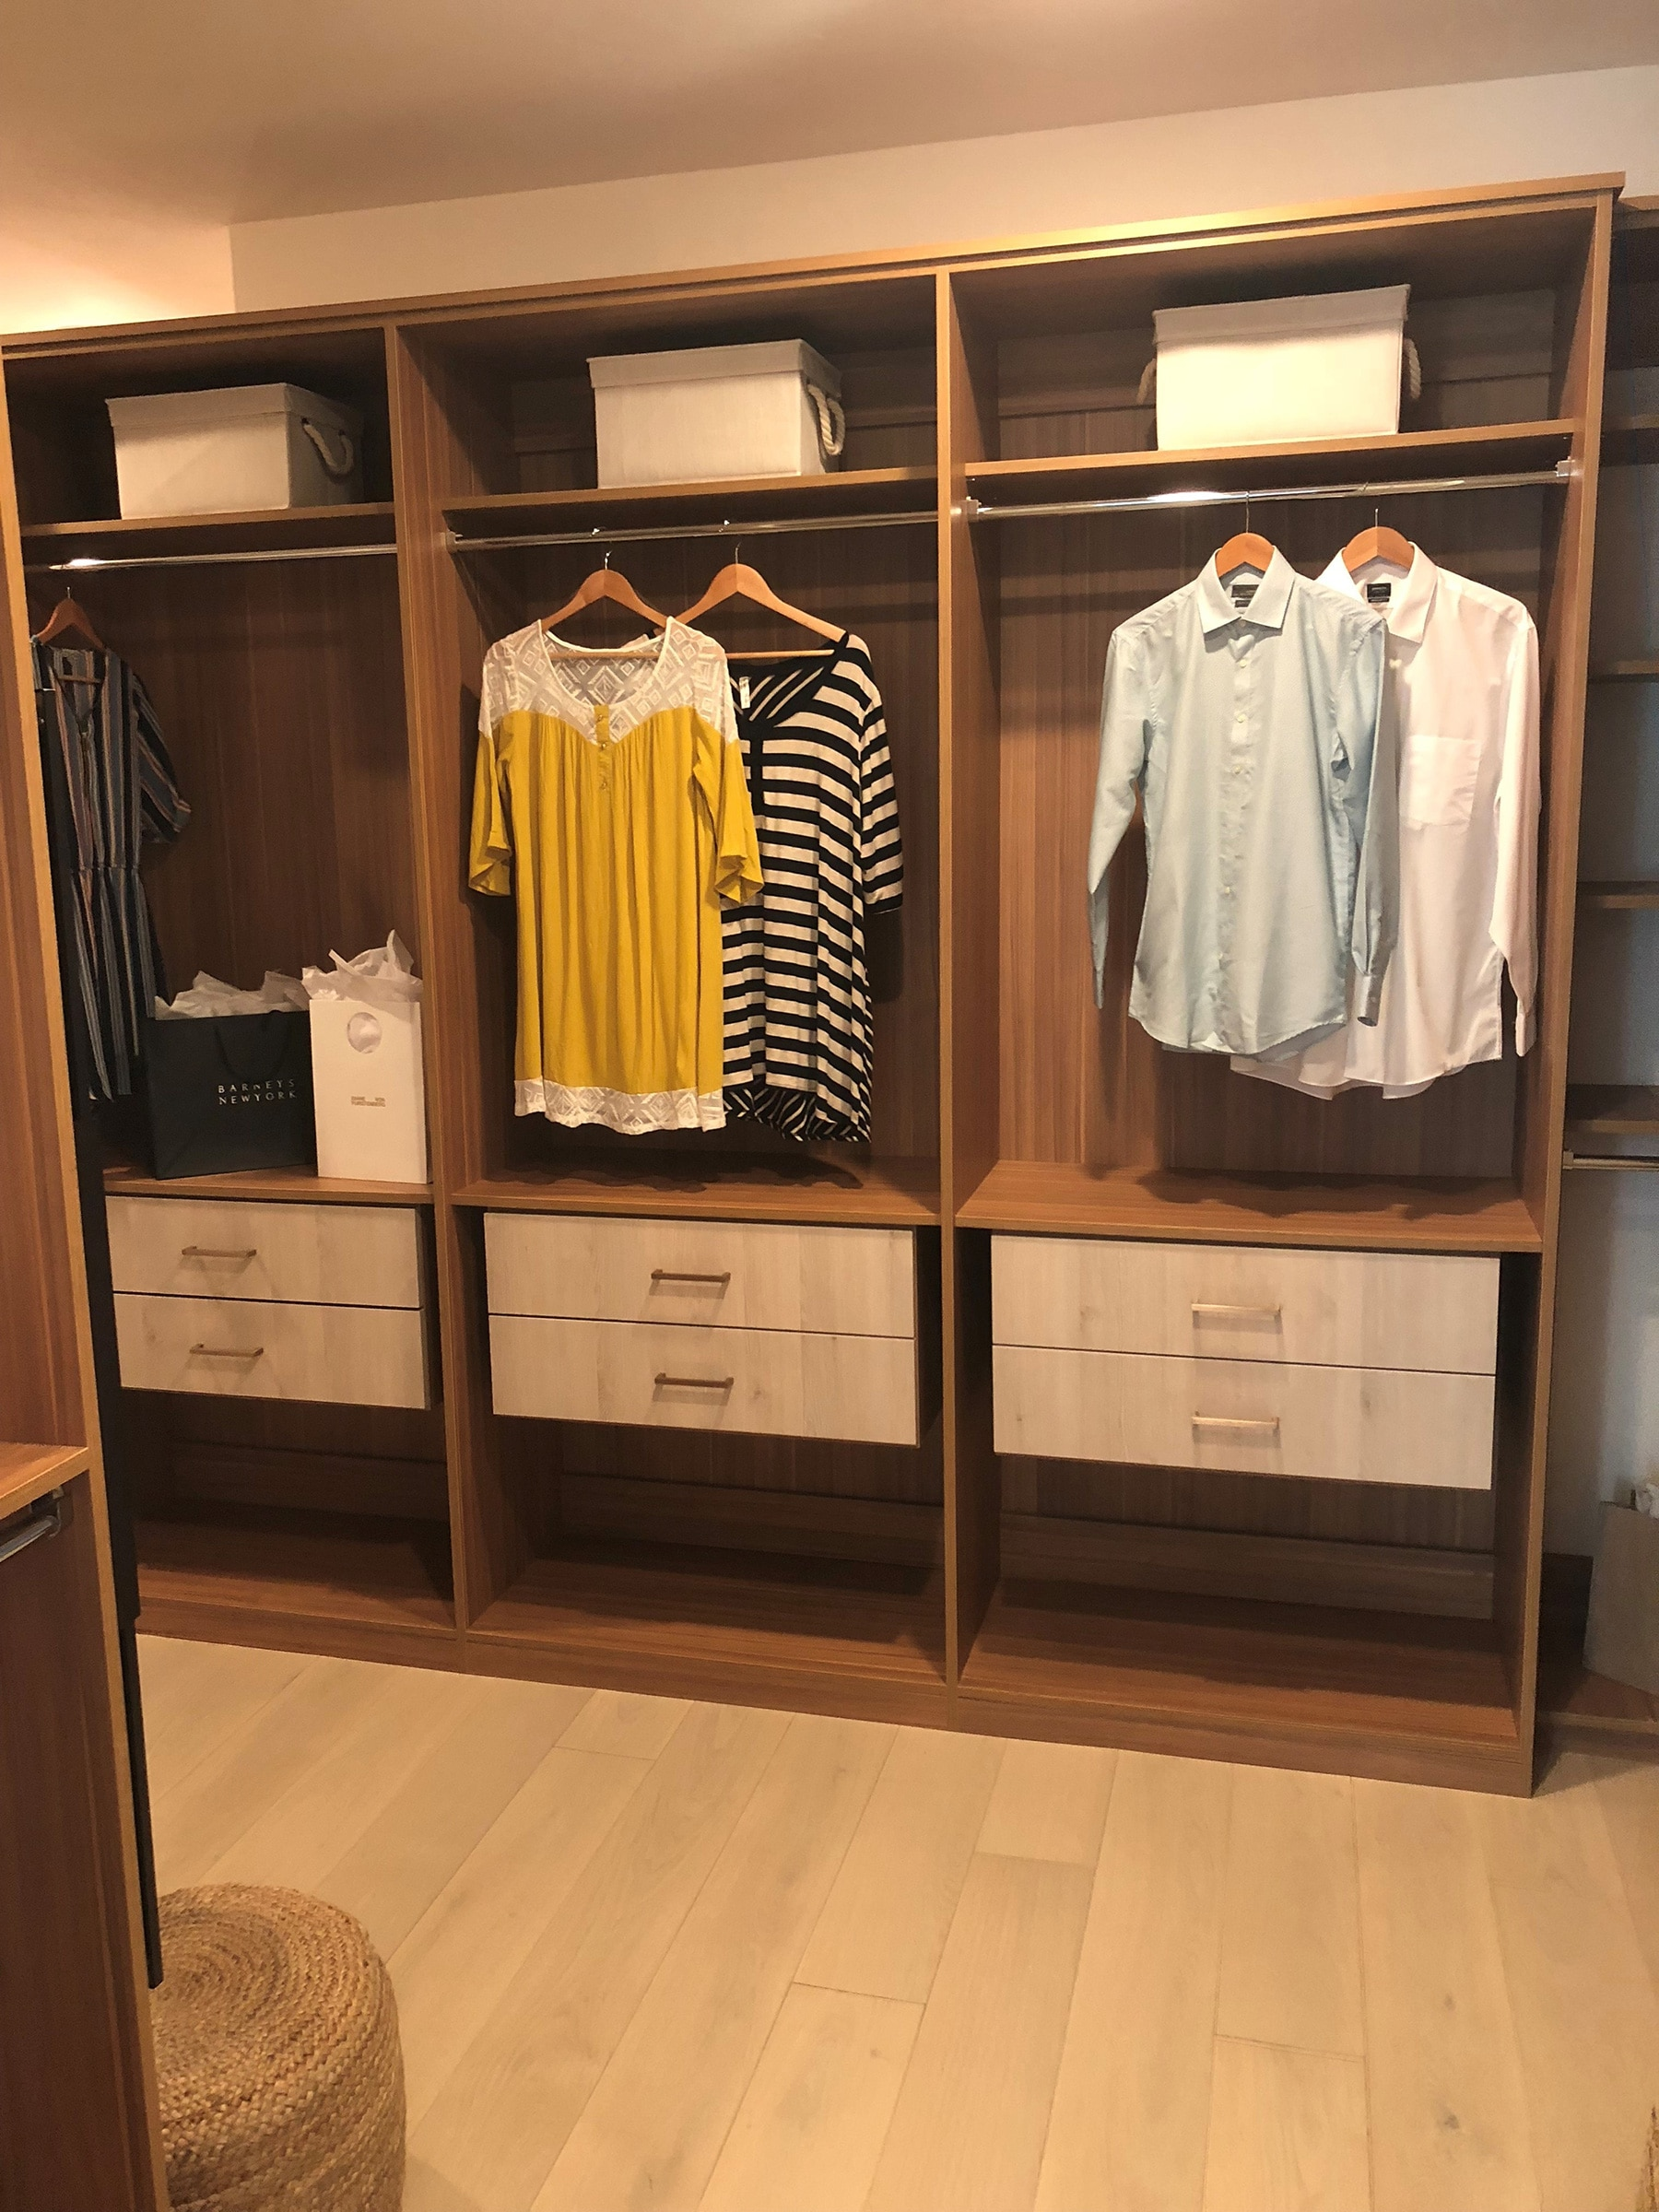 Building A Luxury Walk In Closet For A High End Summerlin Builder Home In Las Vegas,Outfit Colors That Go With Purple Clothes